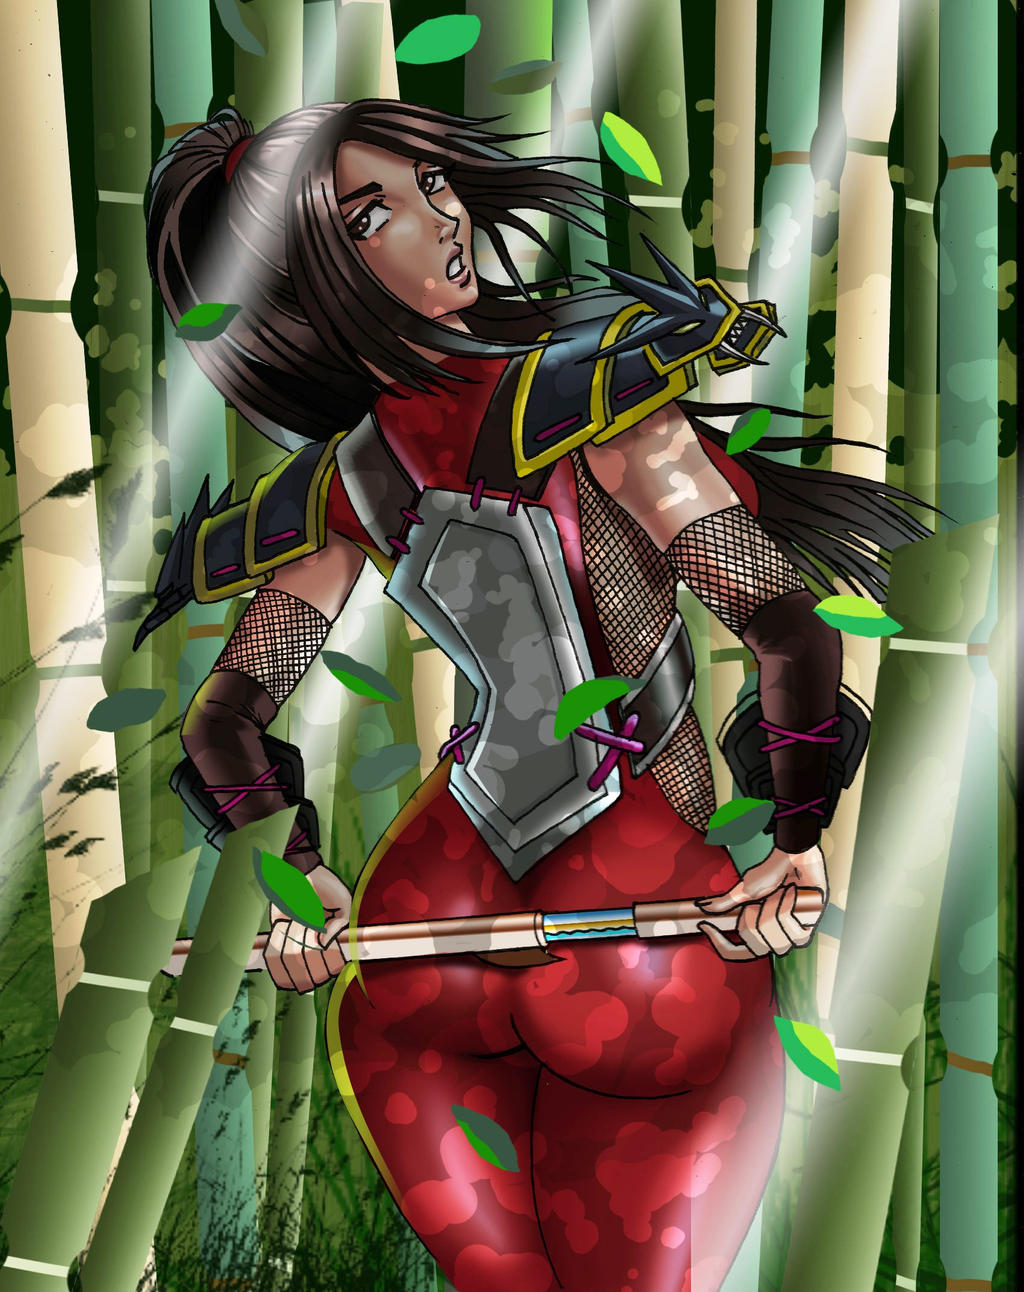 Taki-soul-calibur-bamboo-woods by chacrawarrior